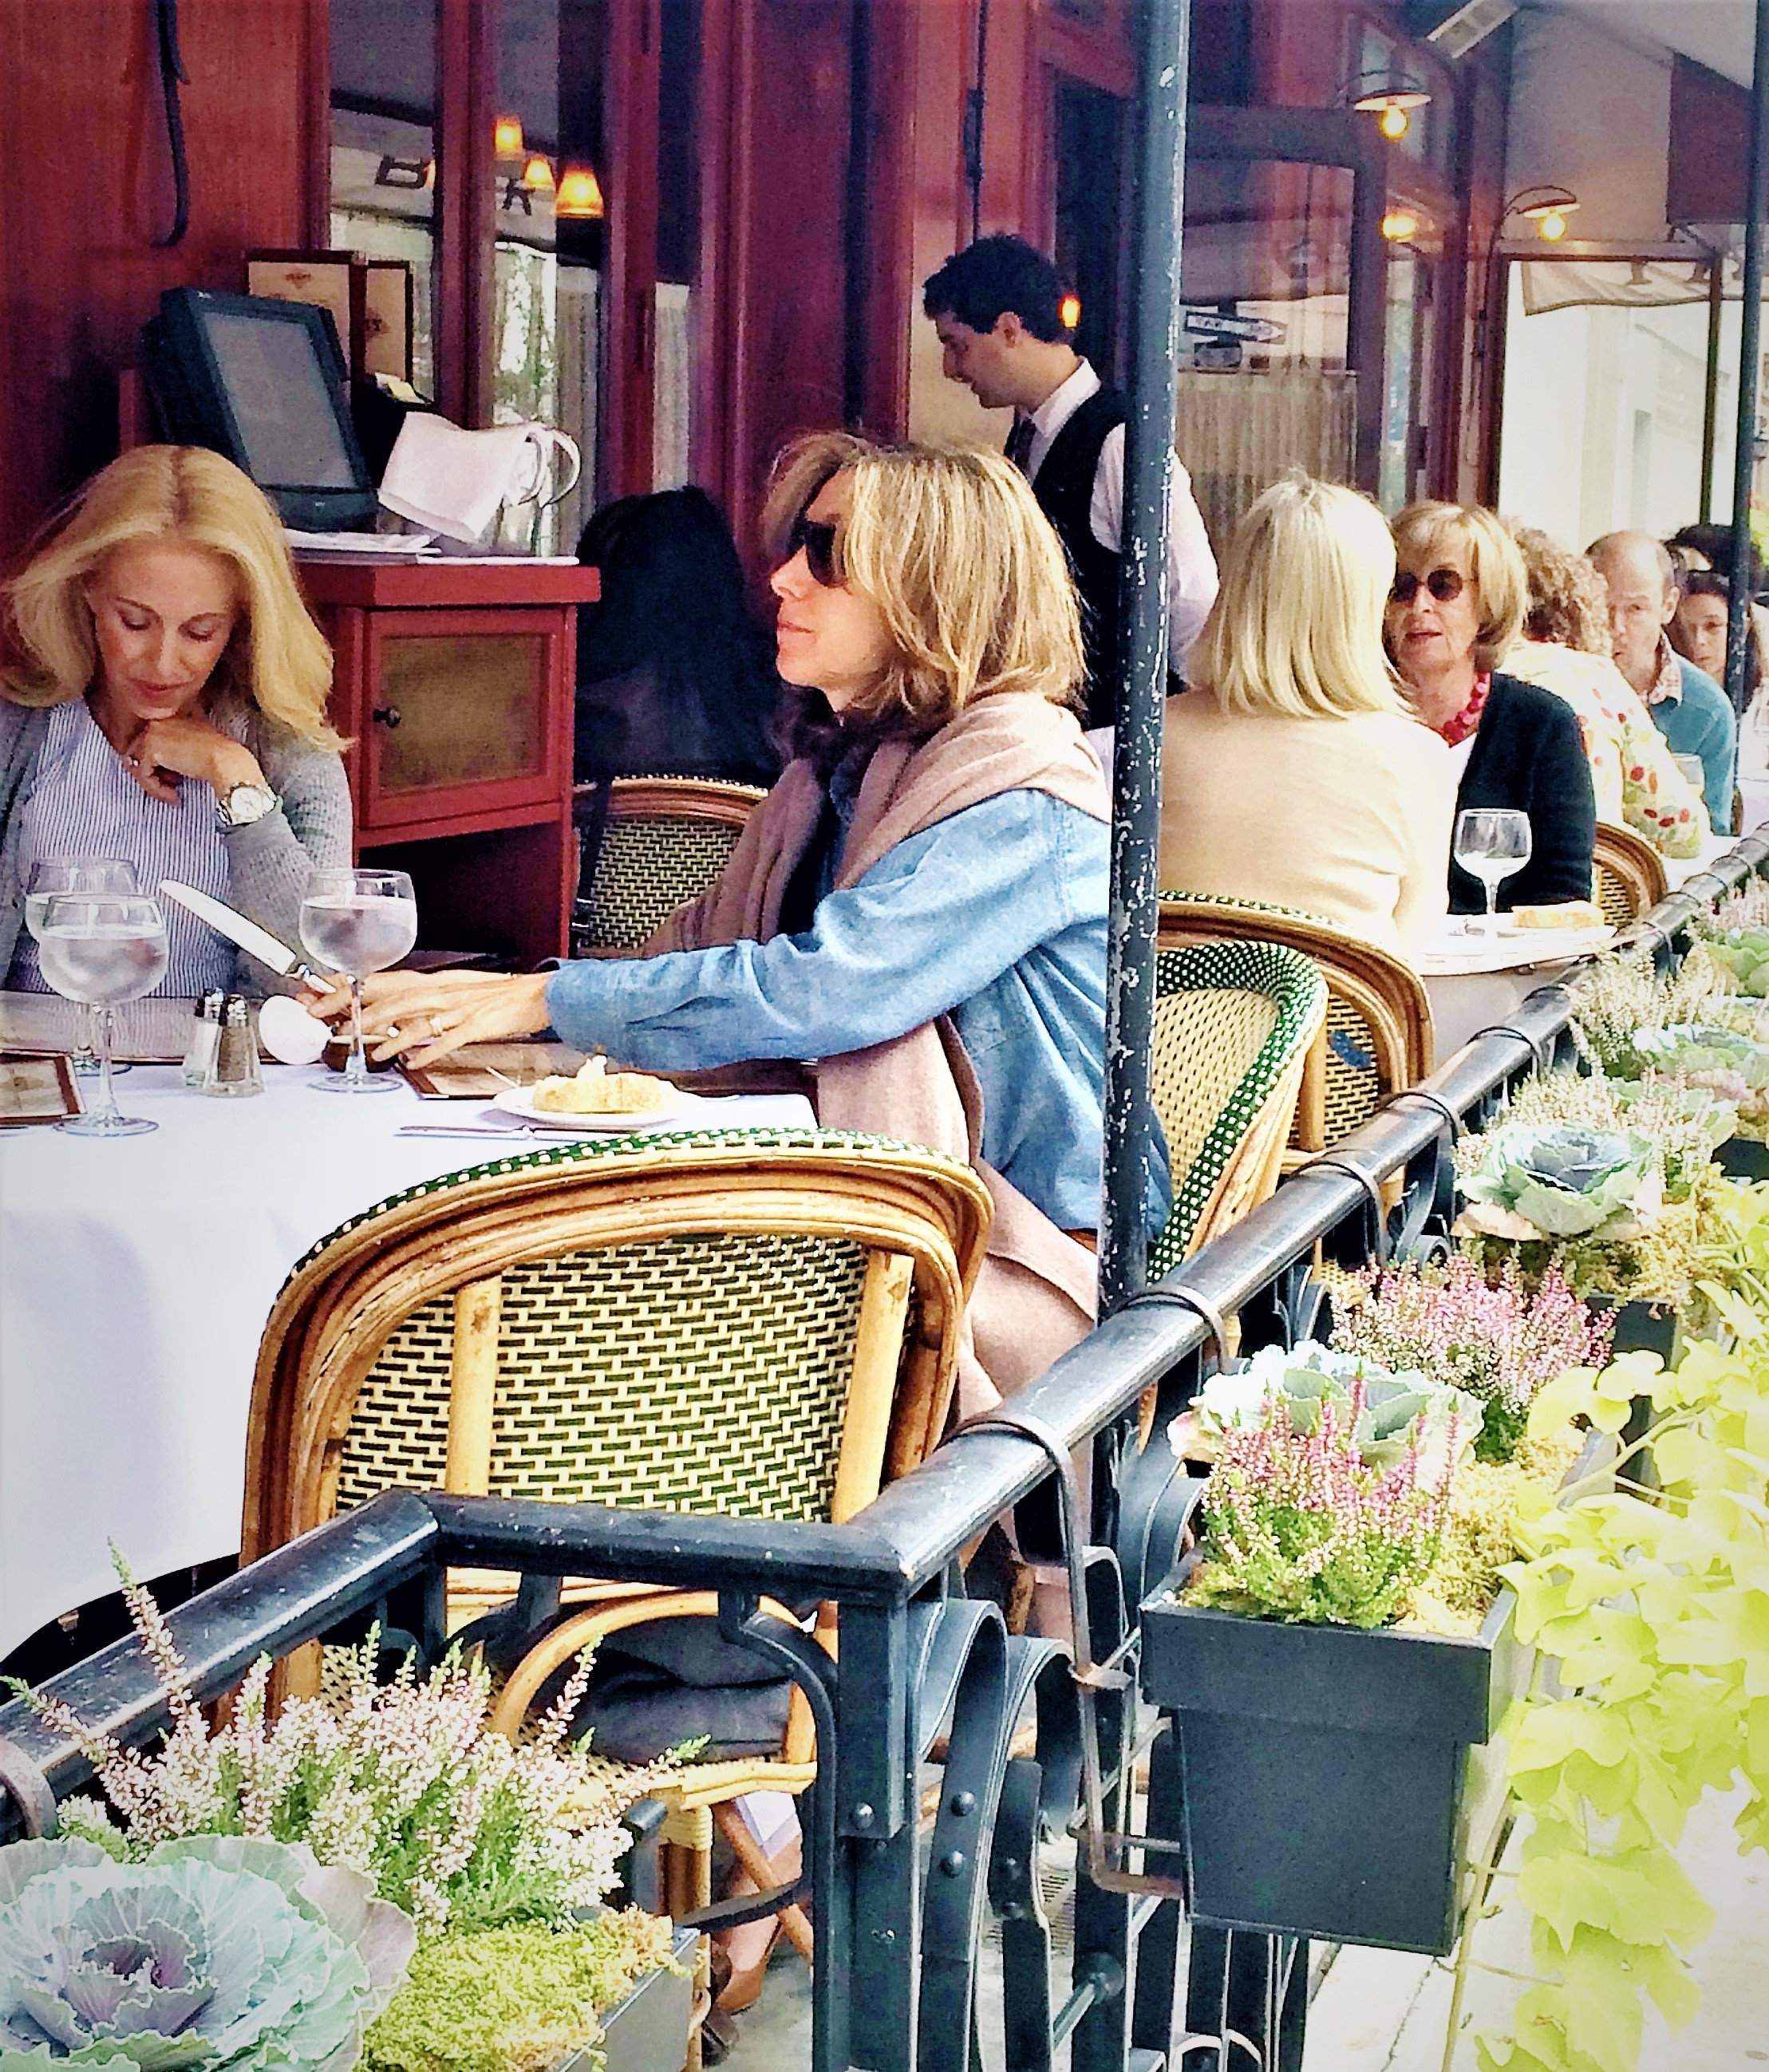 Orsay, a slice of Paris on Lex